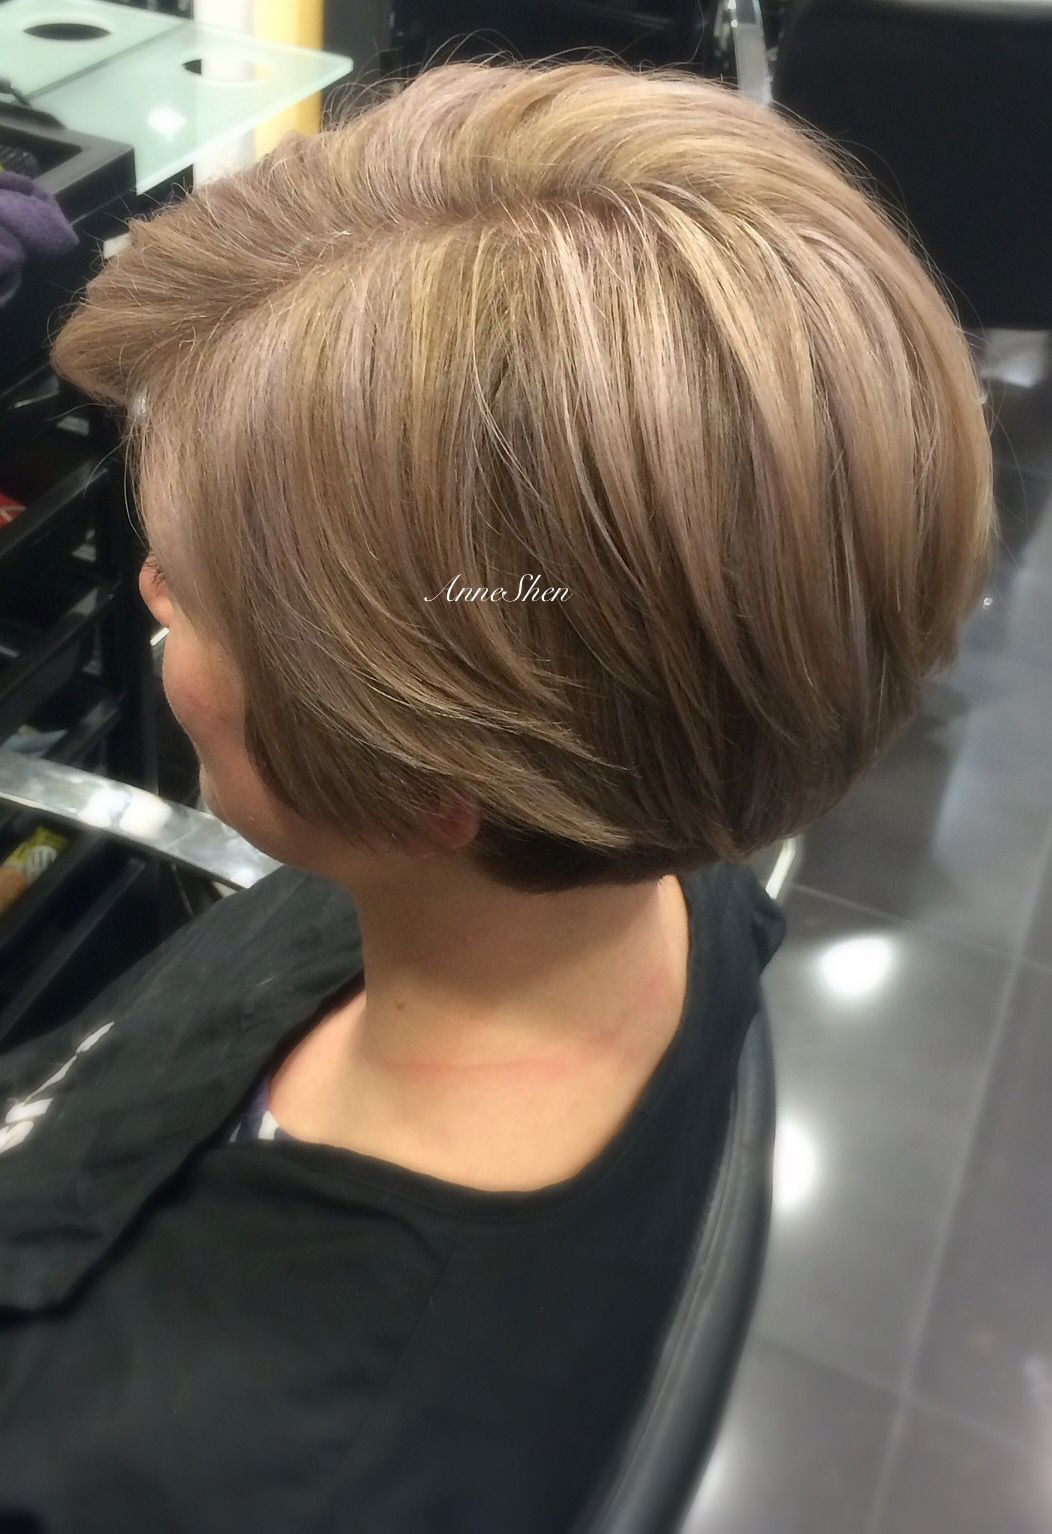 Undercut Hairstyle With Icy Blonde Highlights Icyblonde Blondehair Highlights Shorthair Hairideas Undercut Beautifulhair